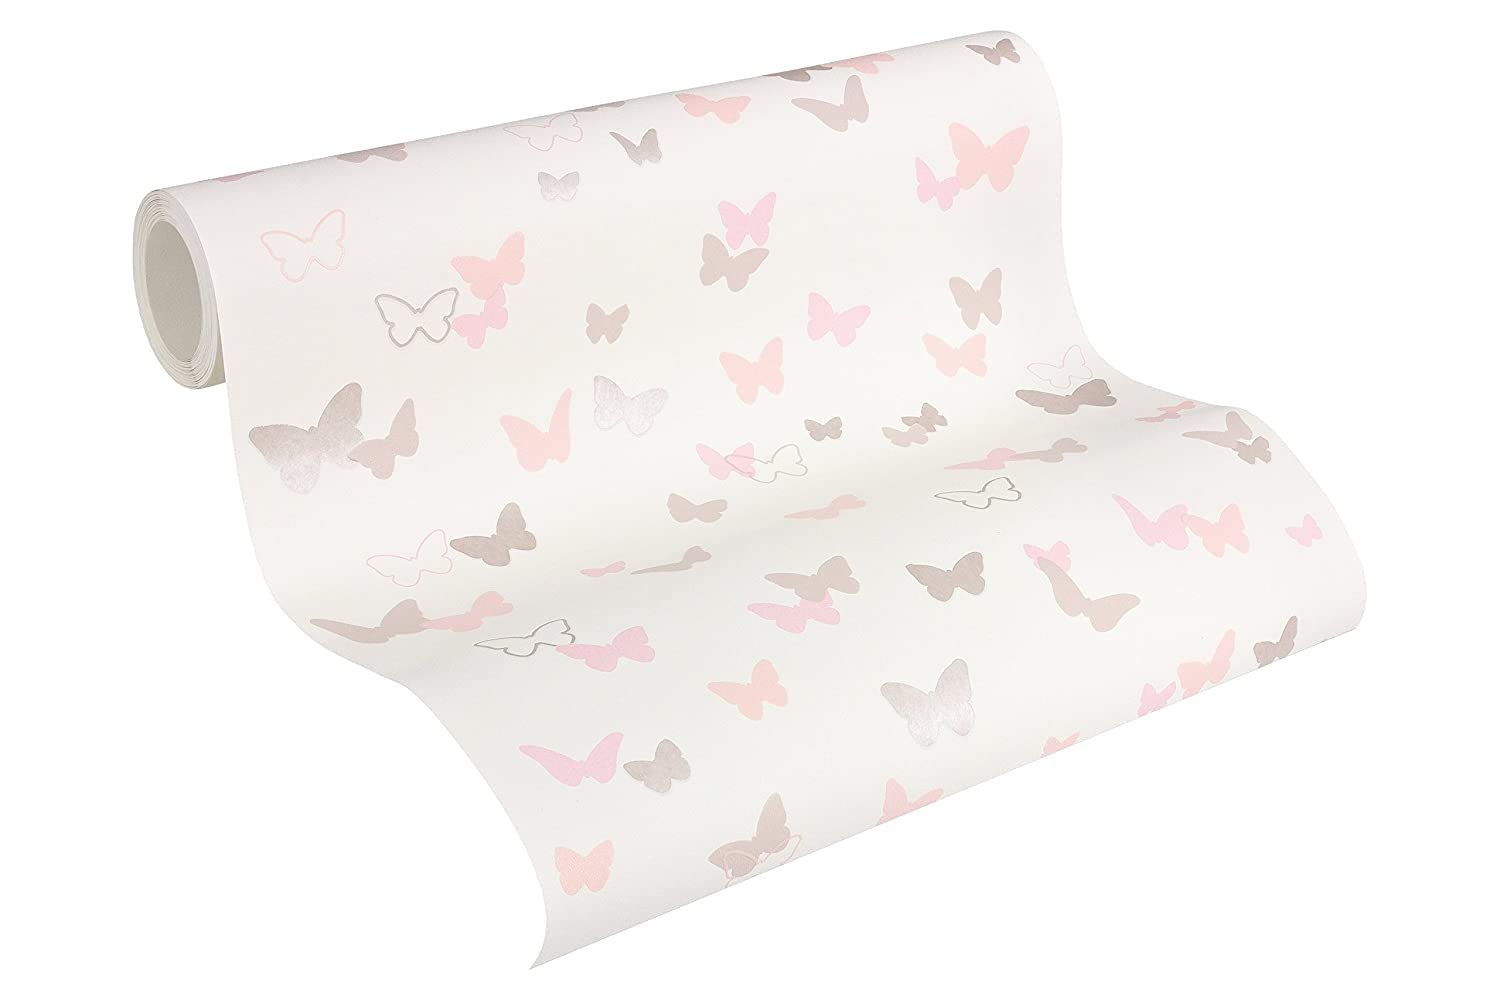 Esprit Kids Vliestapete Sweet Butterfly Tapete Kindertapete 10, 05 m x 0, 53 m grau rosa rot Made in Germany 302882 30288-2 A.S. Création